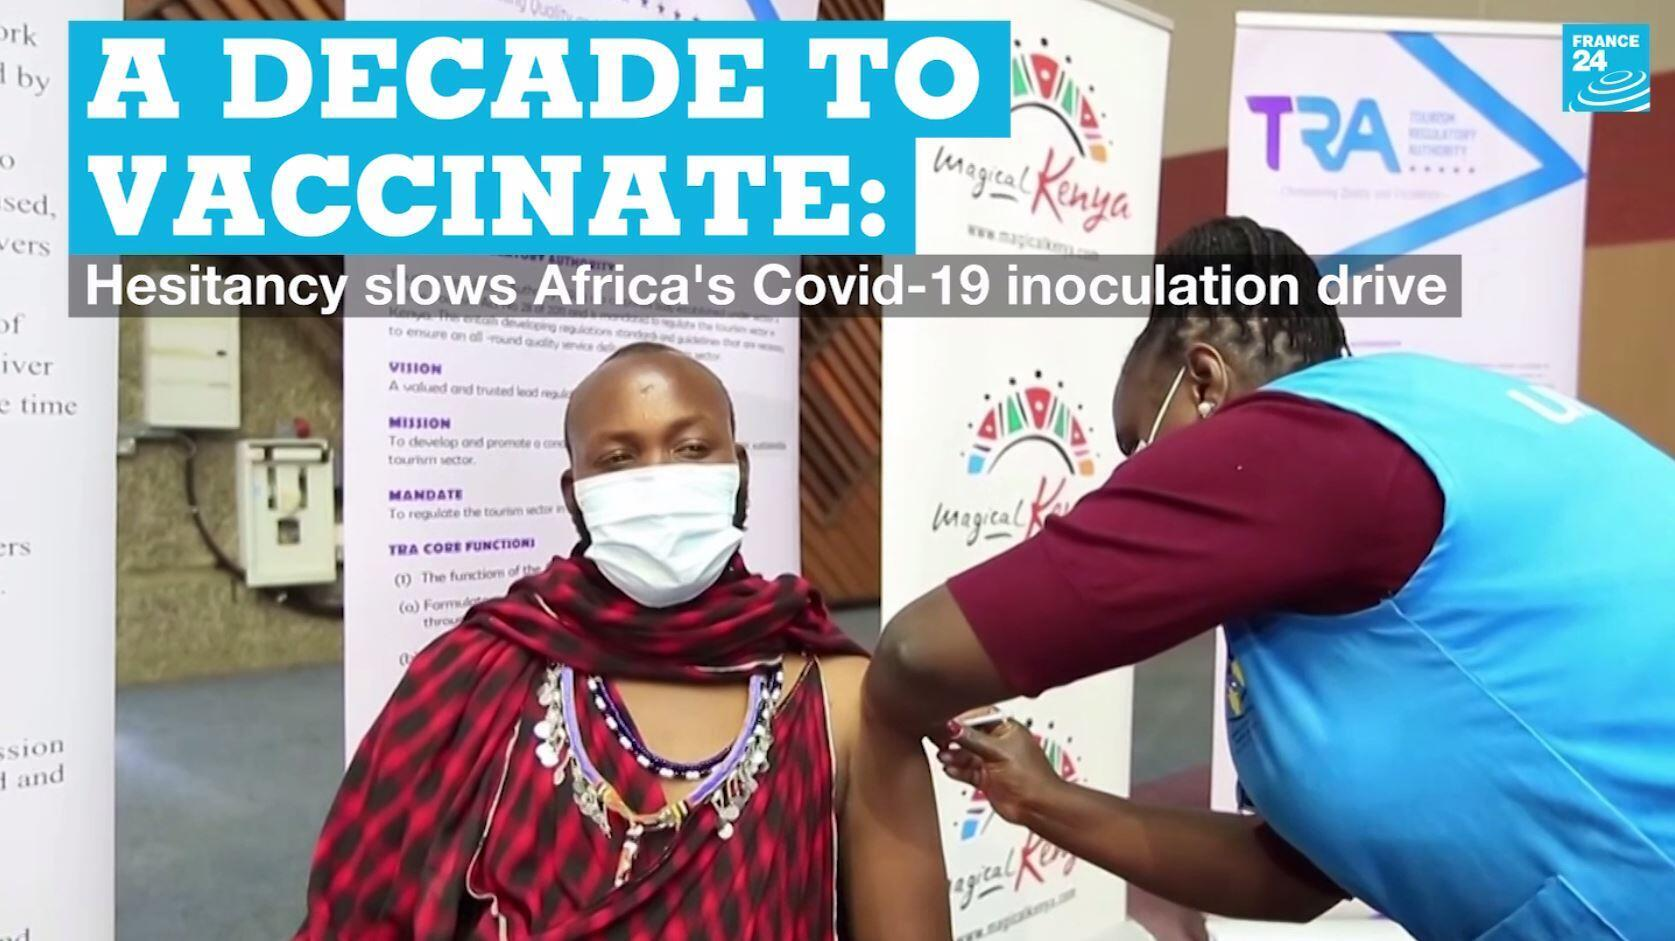 A man is vaccinated against Covid-19 in Nairobi, Kenya, on APril 27, 2021.